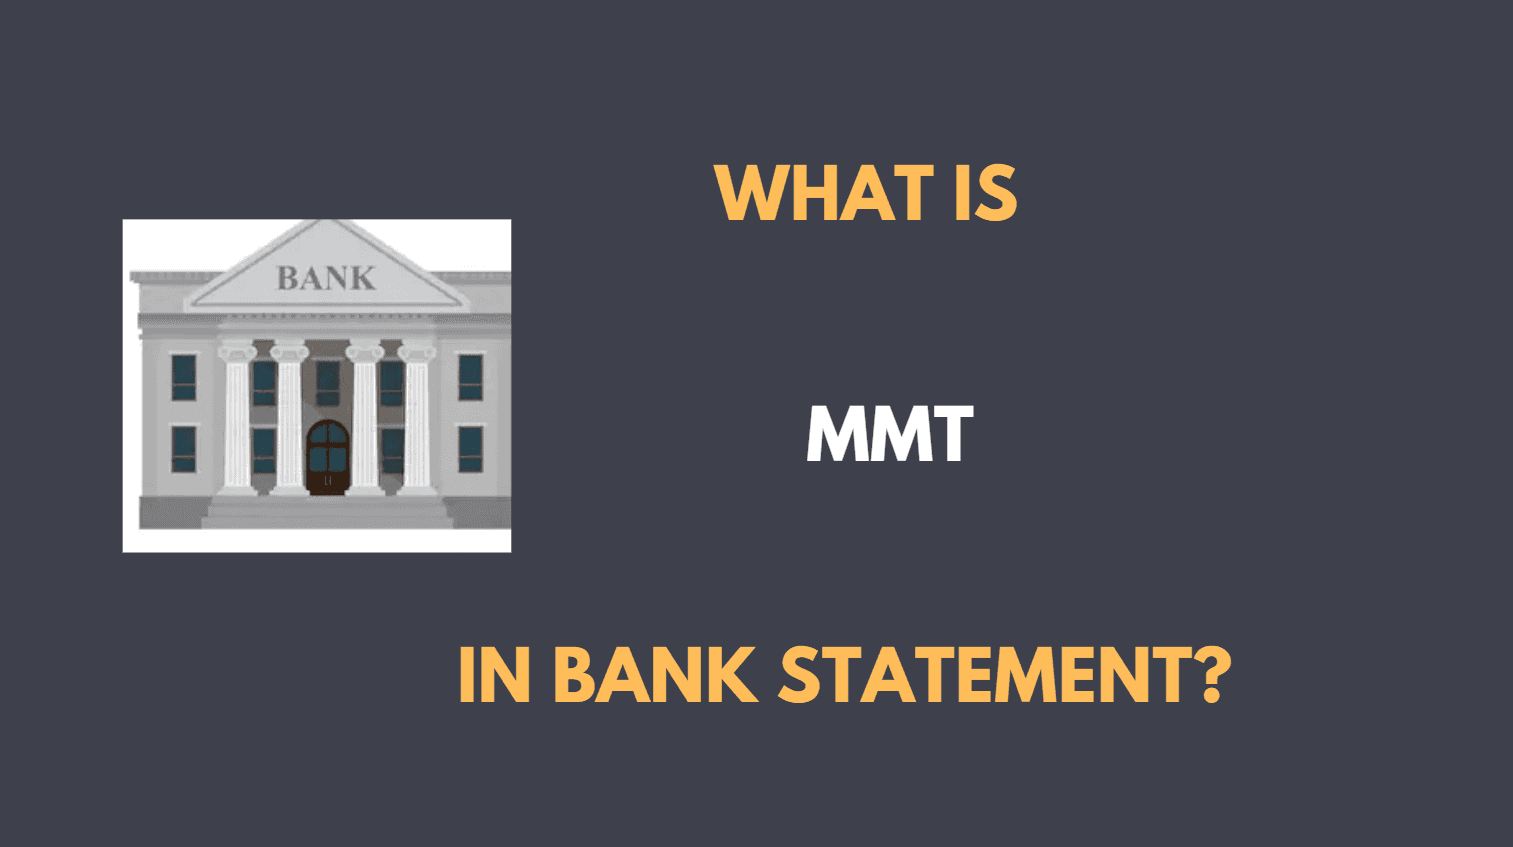 mmt in bank statement